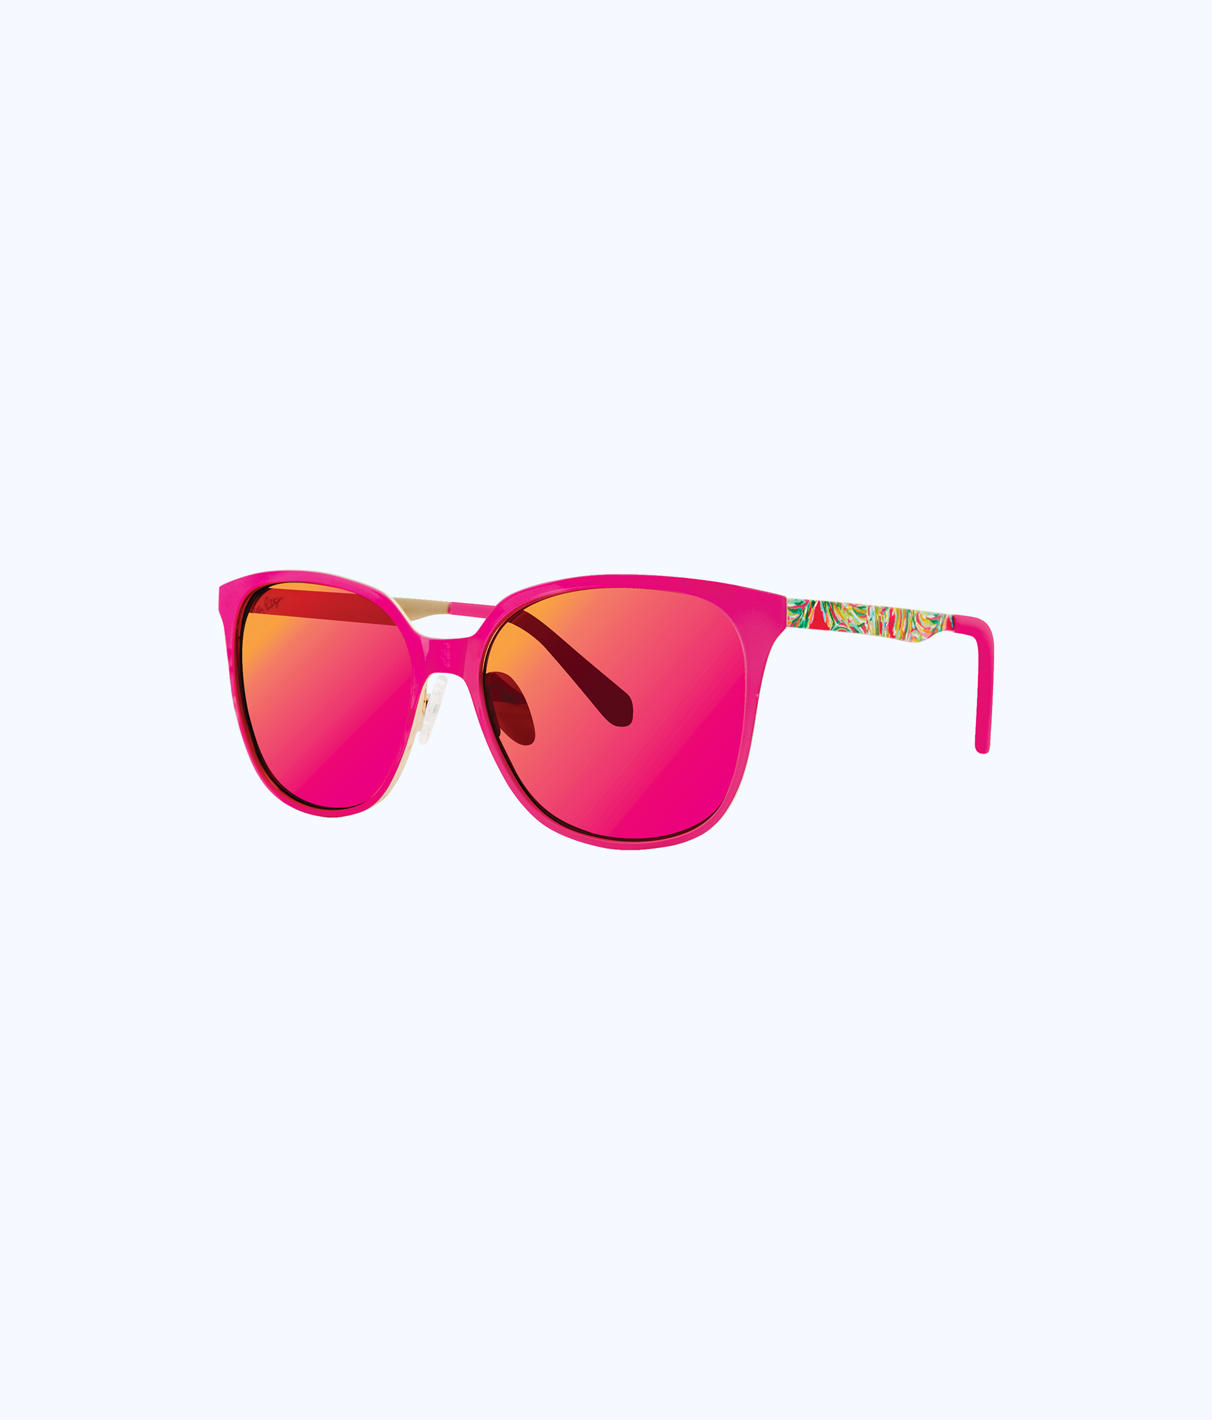 Lilly Pulitzer Lilly Pulitzer Landon Sunglasses